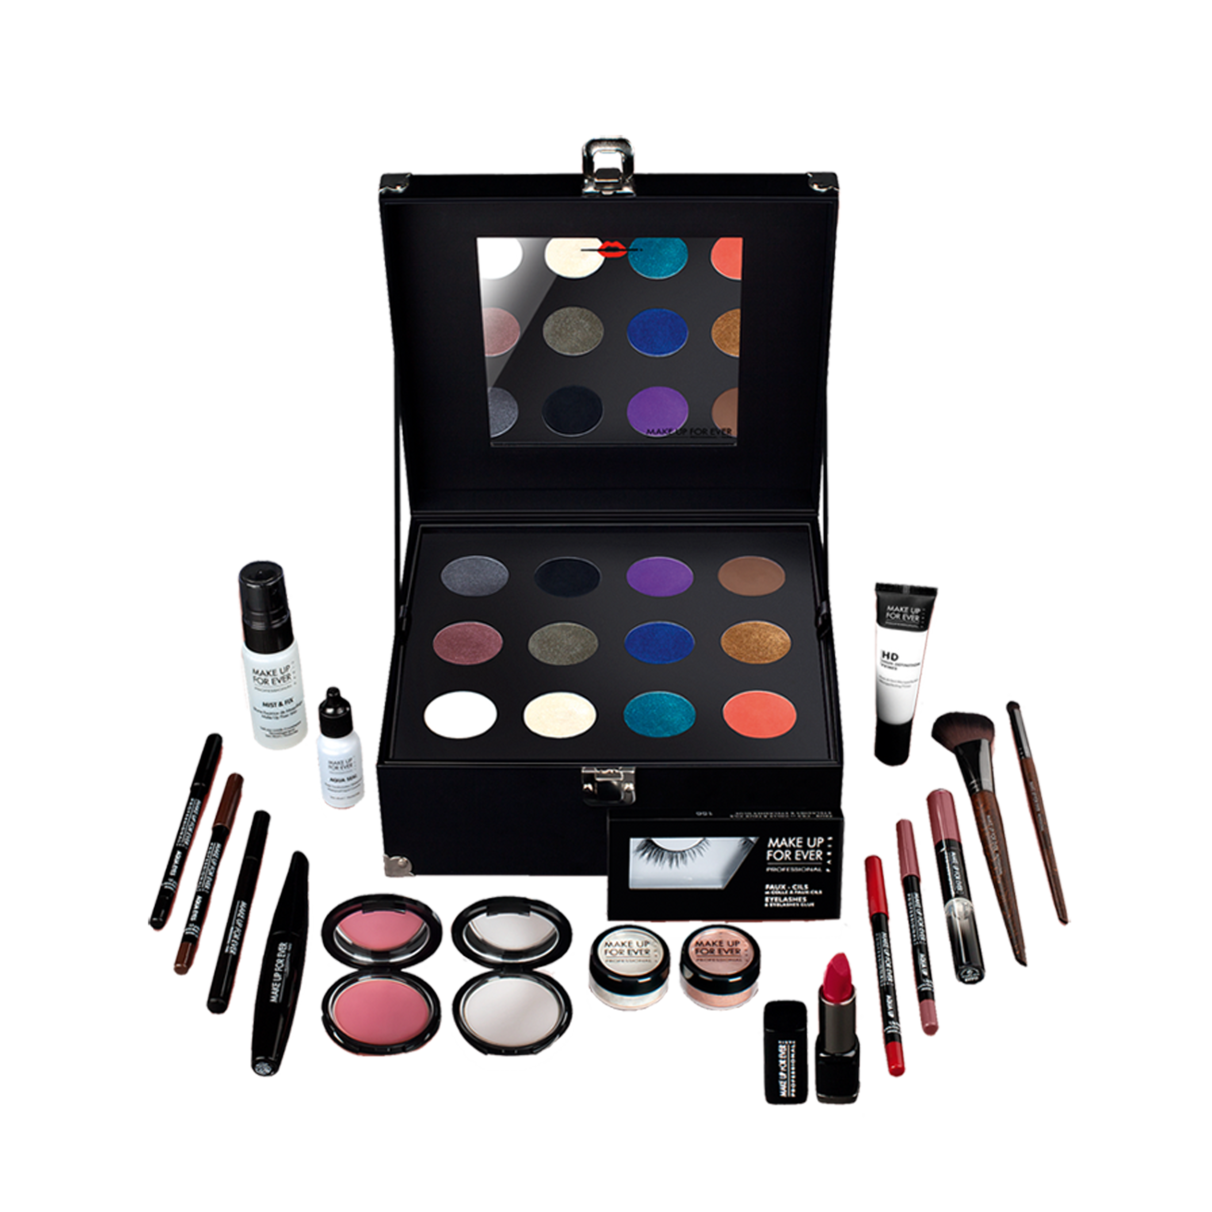 MAKE UP FOR EVER Make Up Station Get Backstage Access to Pro Makeup Tips